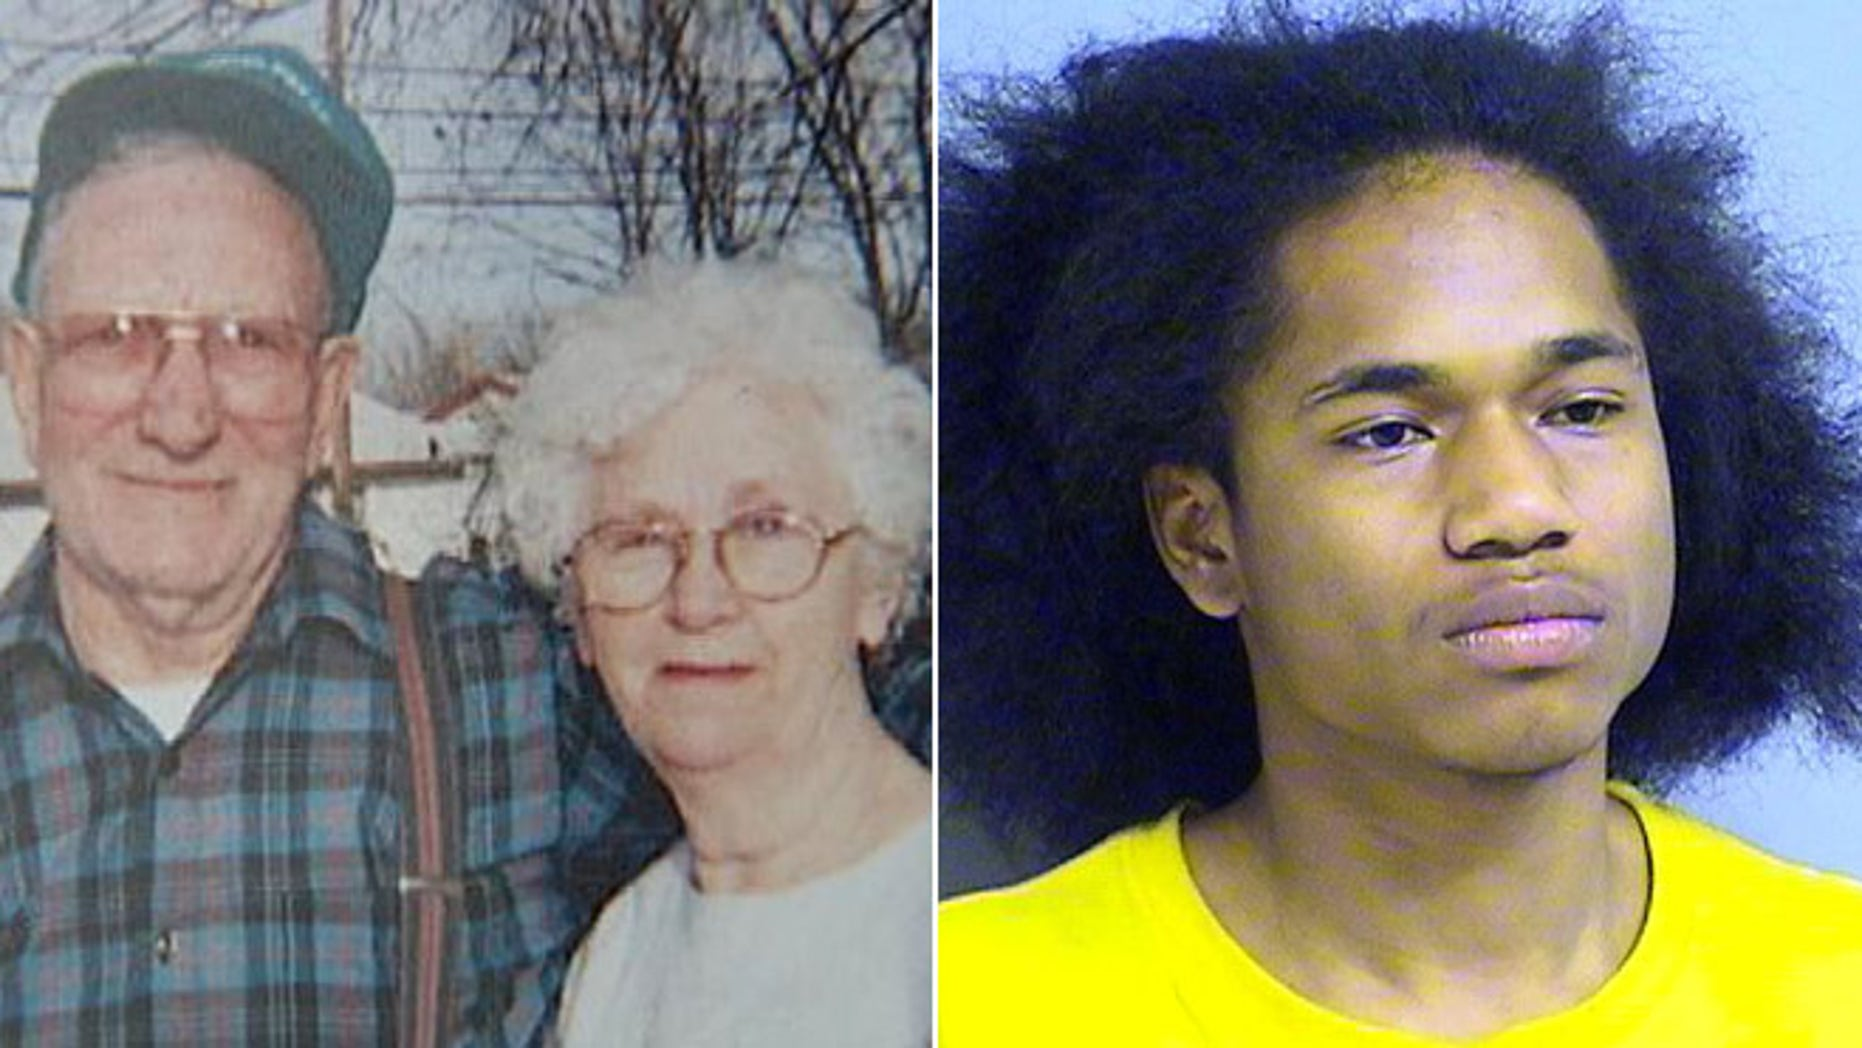 Bob and Nancy Strait, left, have died after an alleged home invasion by Tyrone  Woodfork, right.